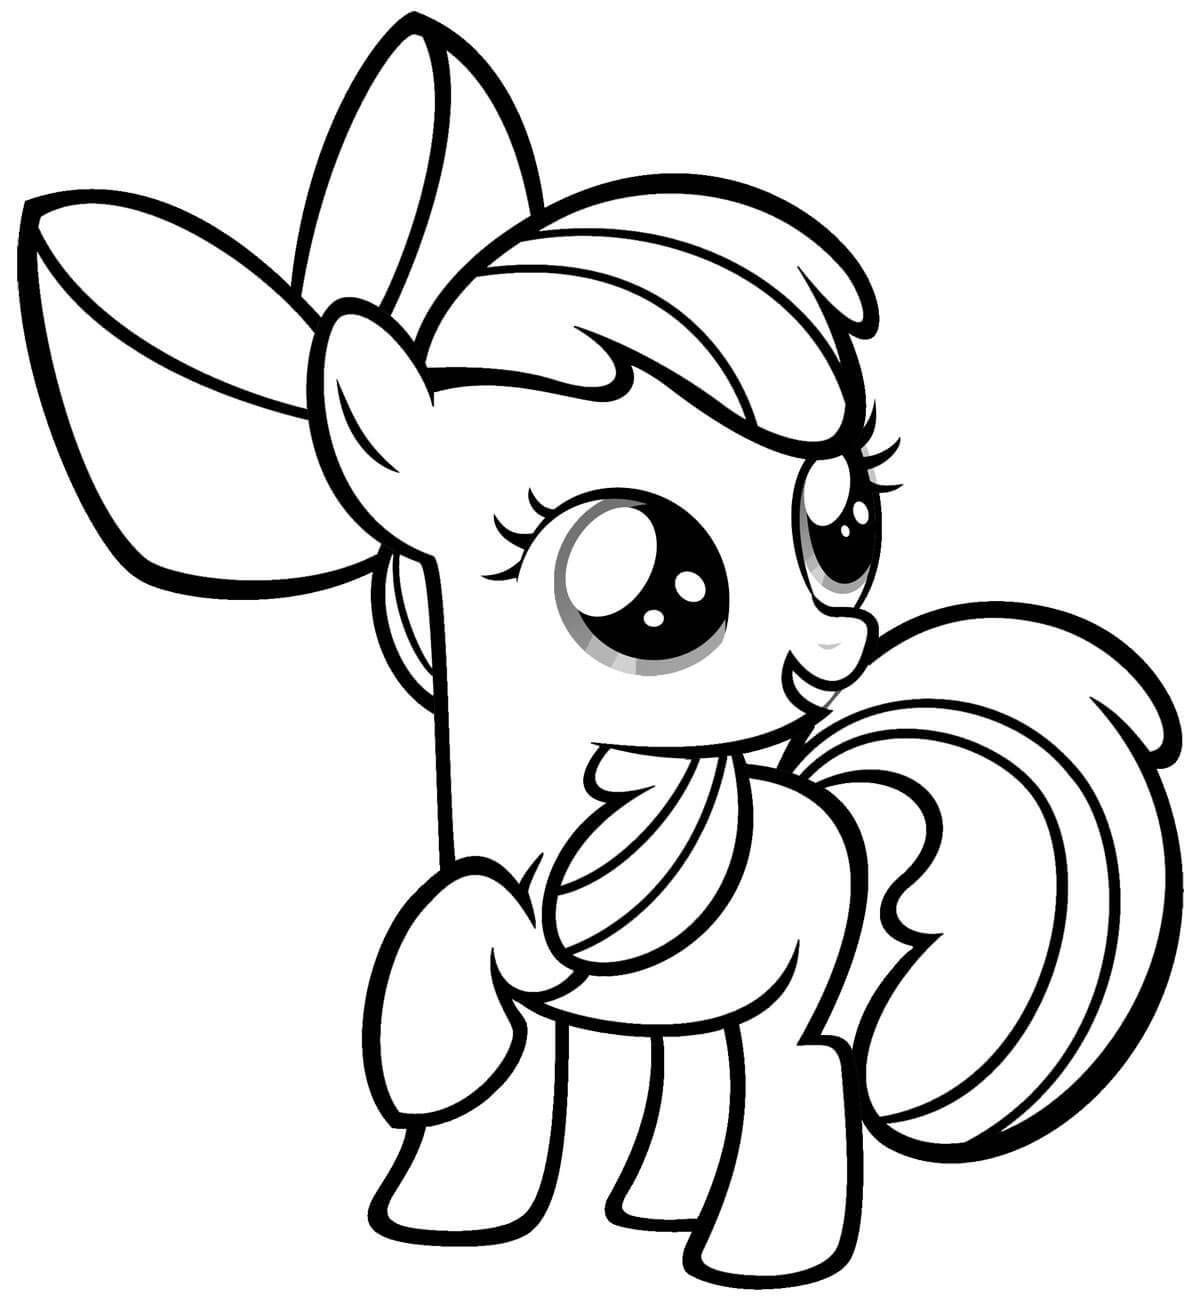 20 My Little Pony Coloring Pages Of 2017 Your Kid Will Love Pony